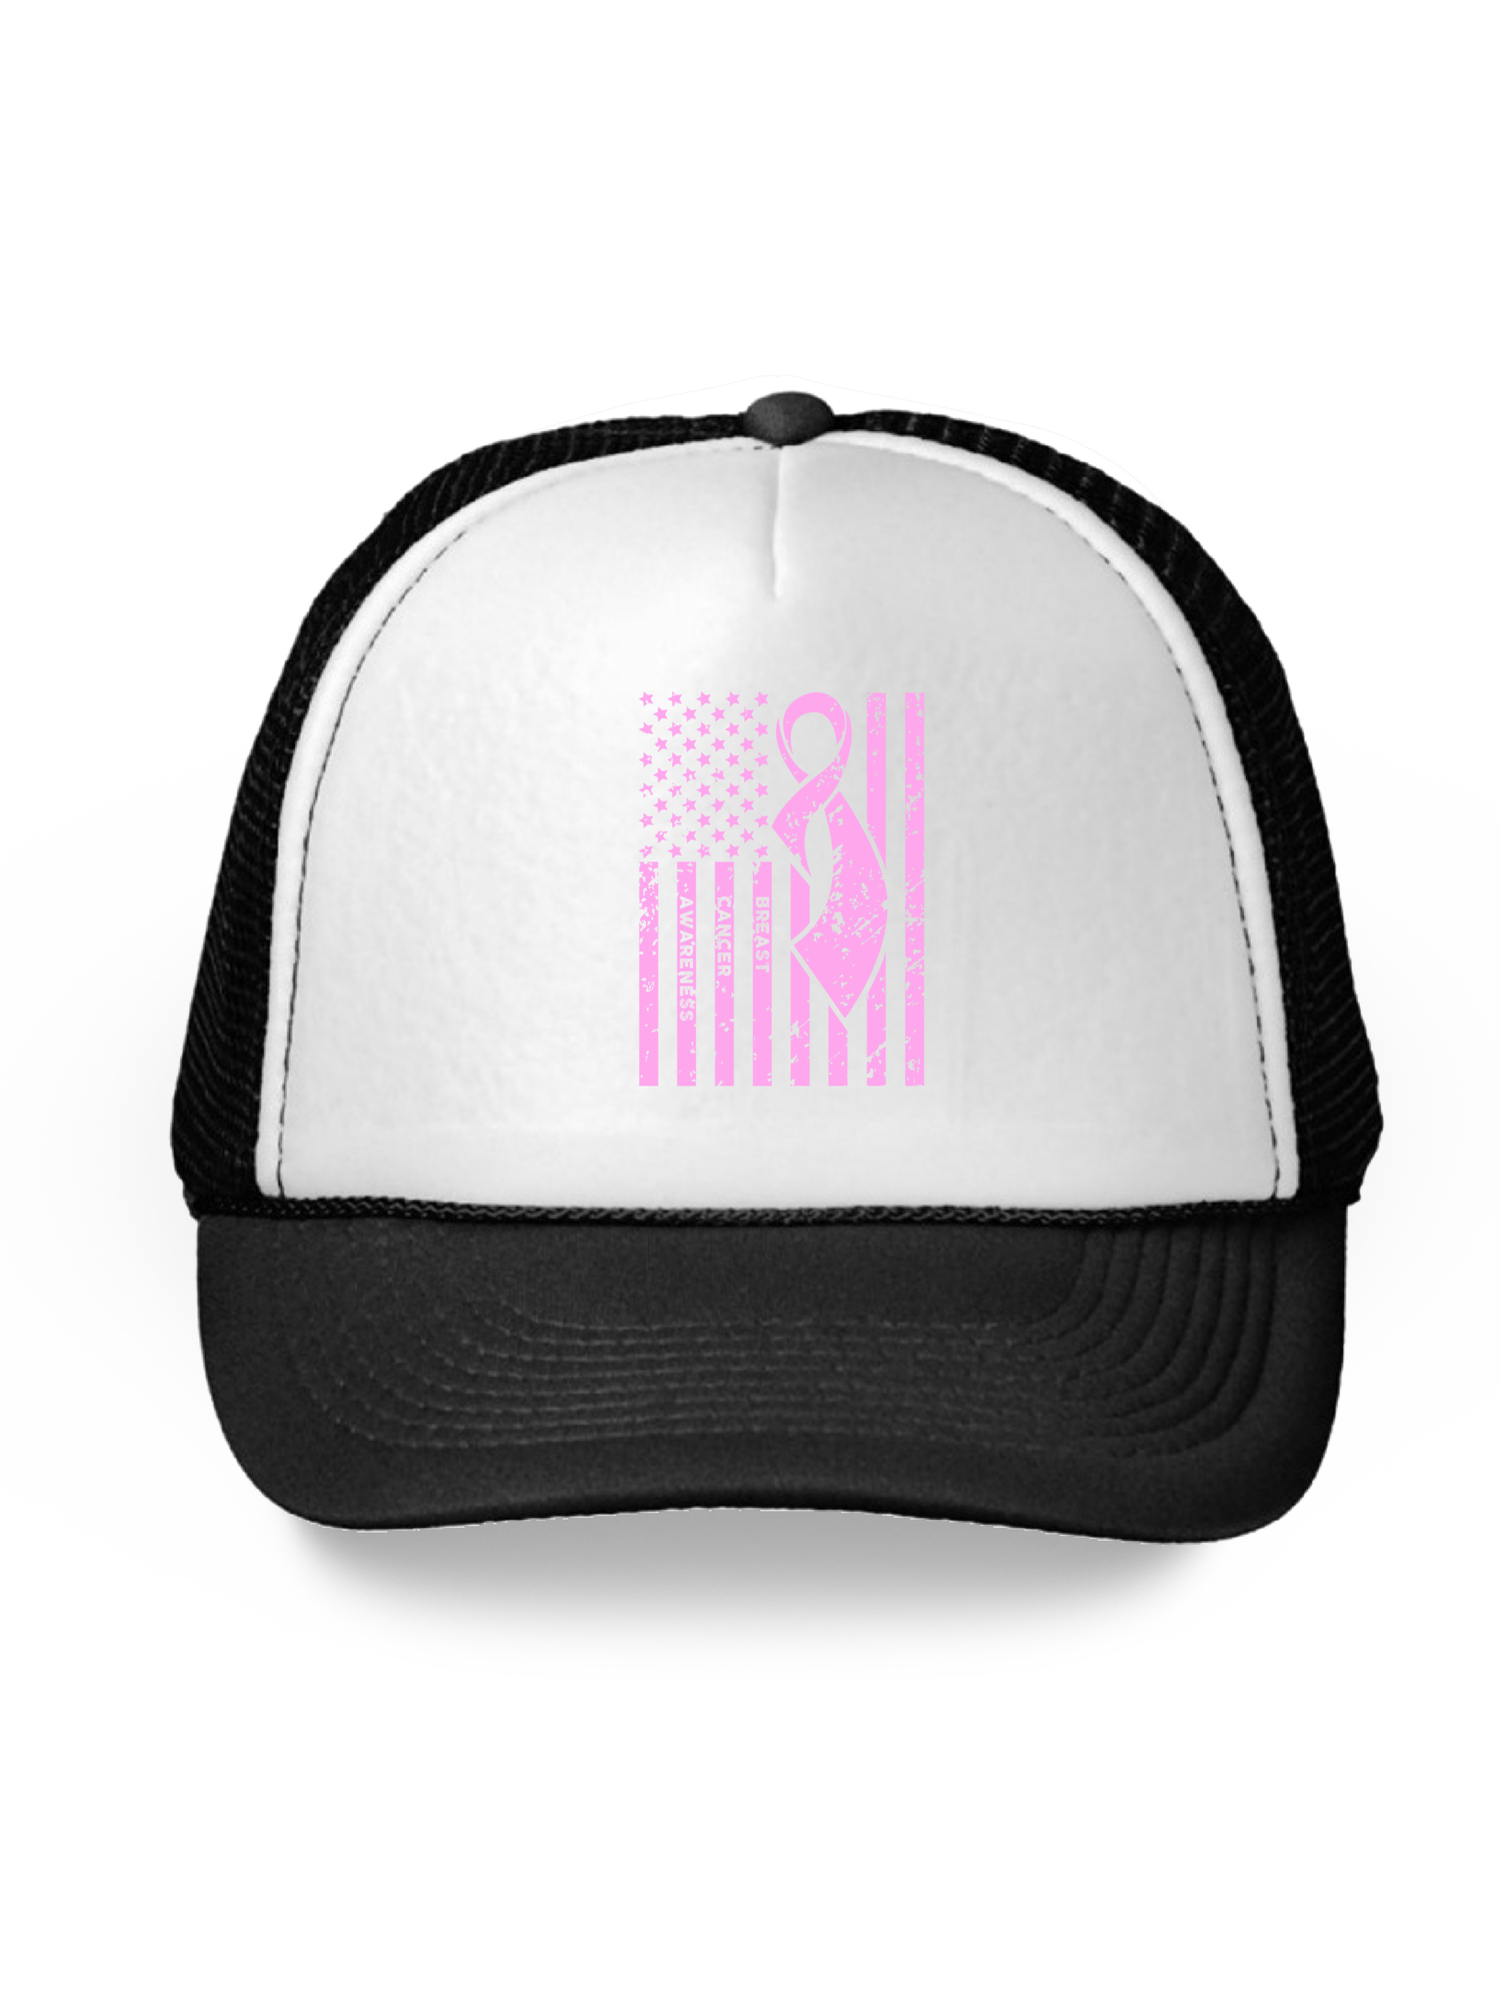 Awkward Styles - Awkward Styles Breast Cancer Awareness Hat Pink Ribbon  Trucker Hat for Men and Women Pink Cancer Support Flag Snapback Hat Gifts  for Cancer ... 961349e32edb